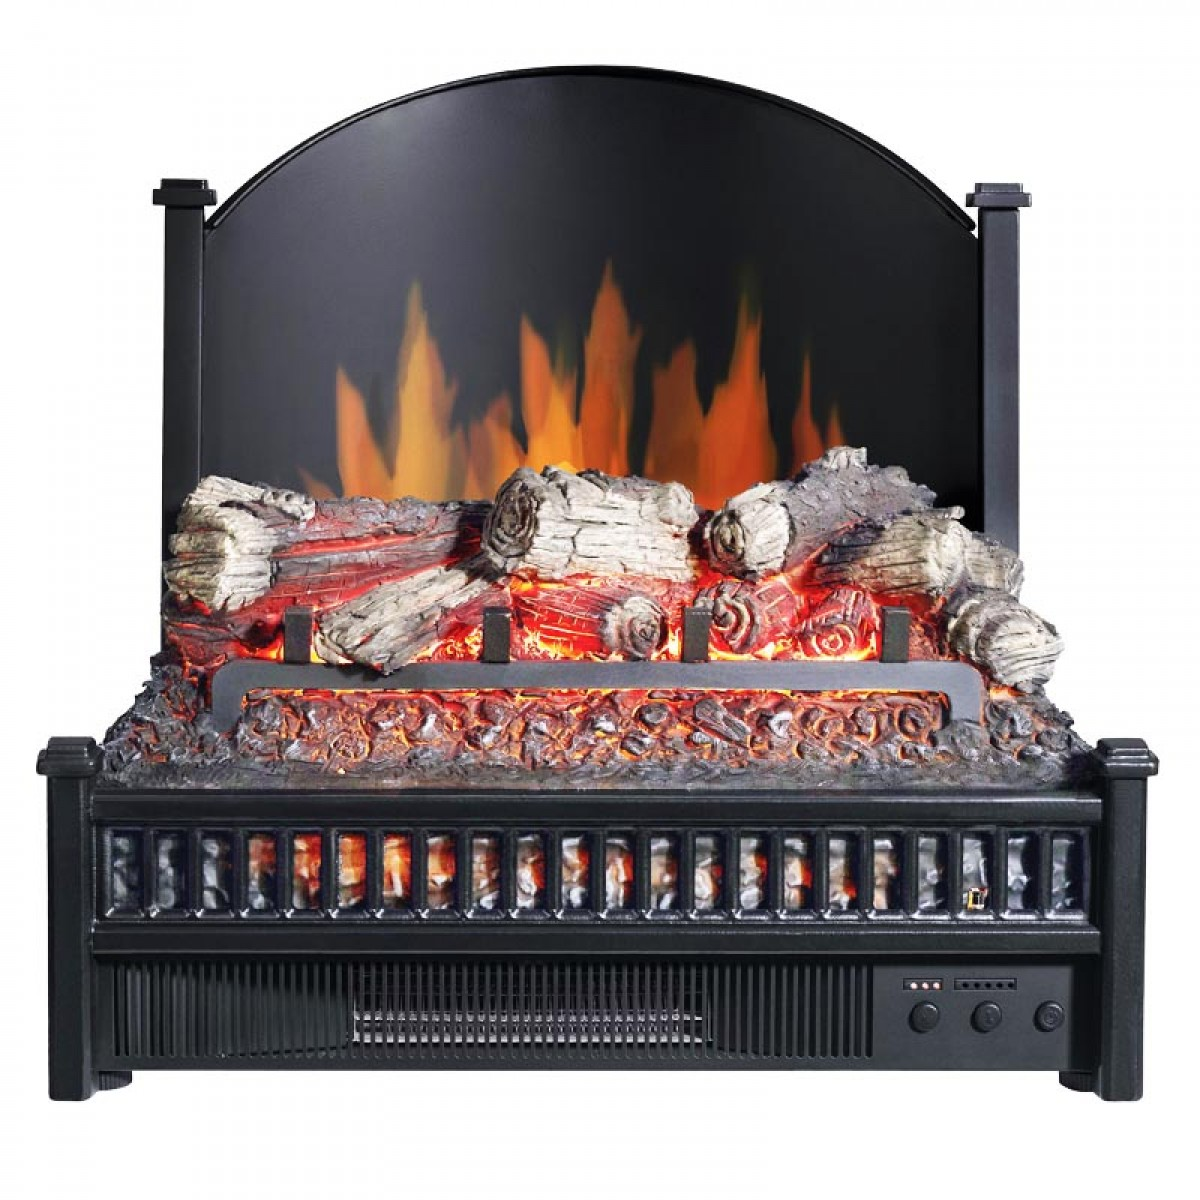 Pleasant hearth electric log insert with fireback li 24 - Firebacks for fireplaces ...